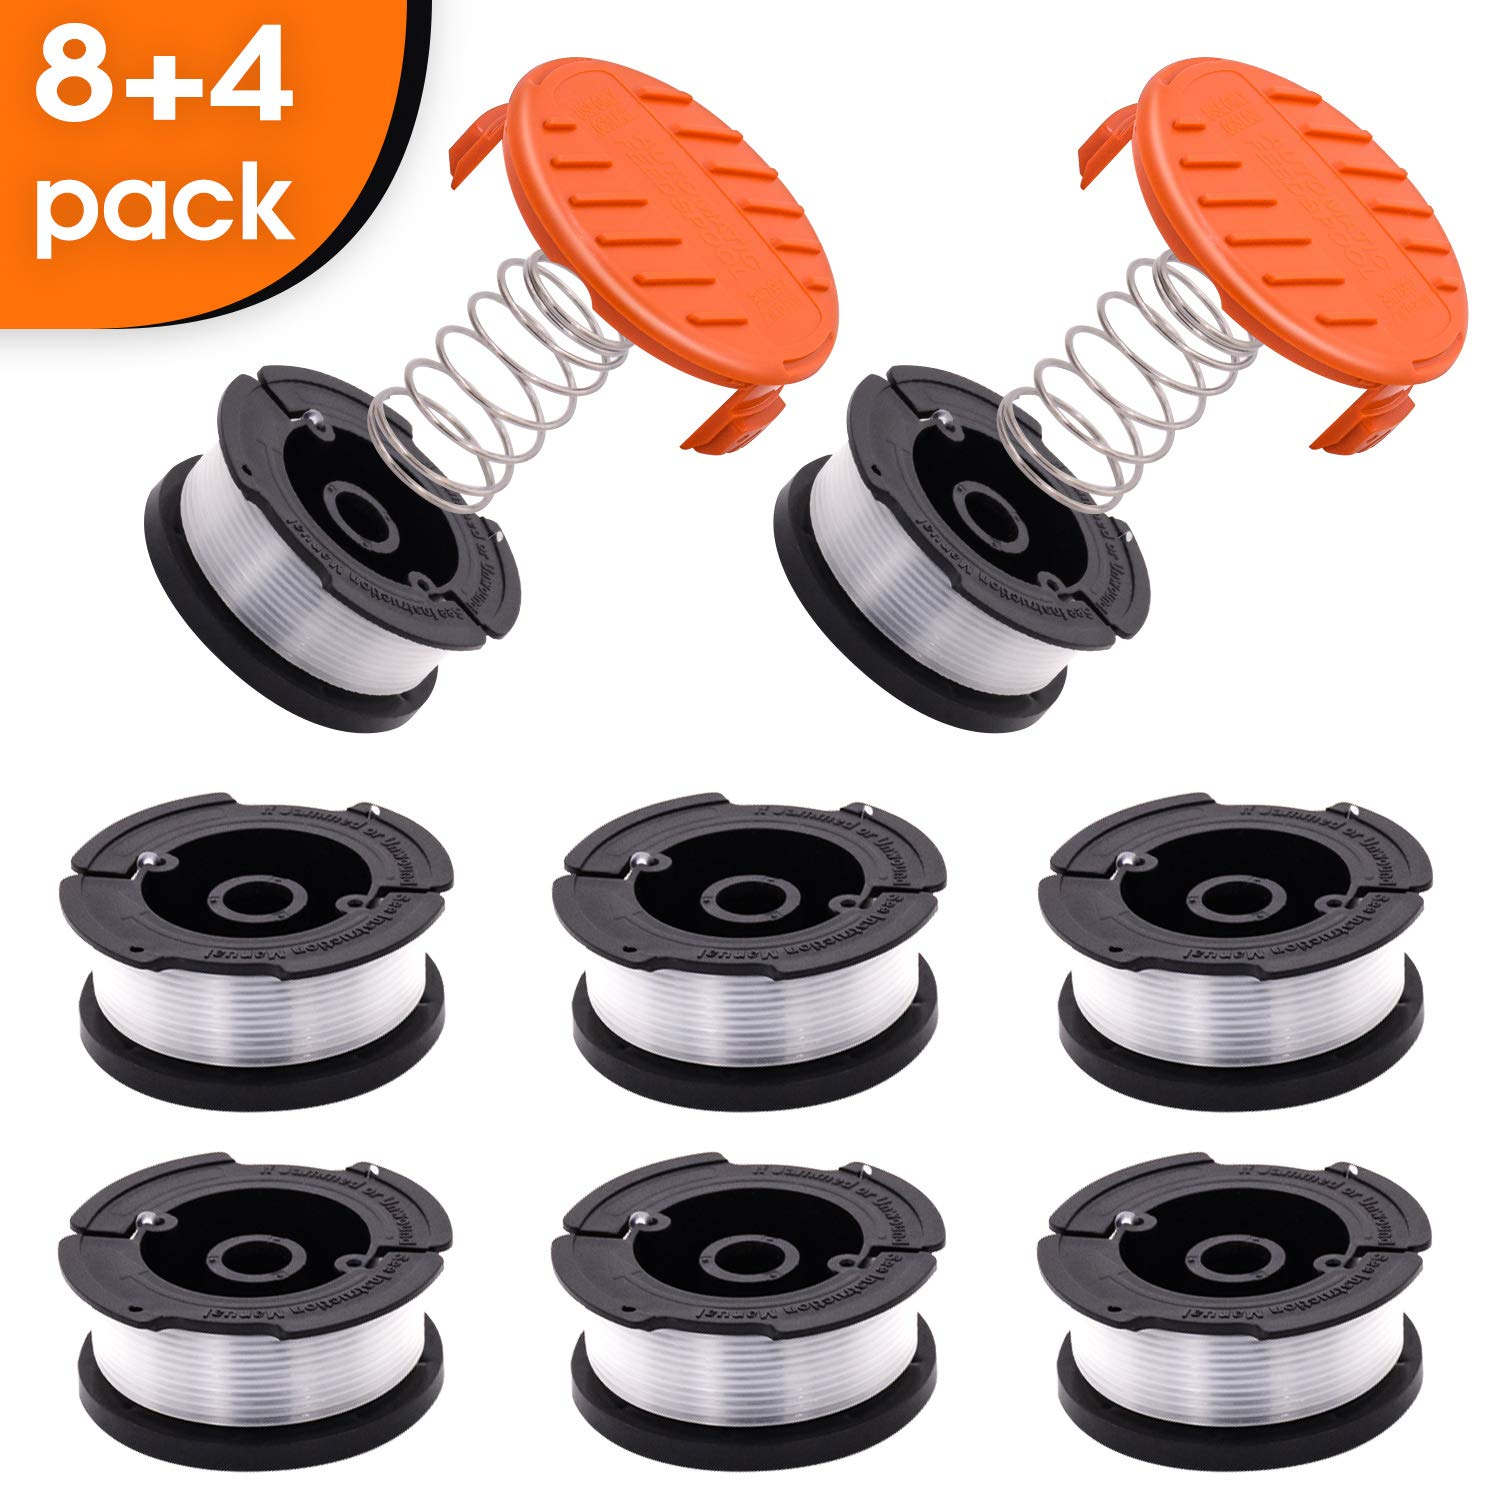 CRST String Trimmer Replacement Spool Weed Eater Cap Autofeed Trimmer String AF-100 0.065-inch 30ft for Black and Decker String Trimmers 12-Pack (8 Replacement Line Spool, 2 Trimmer Cap, 2Spring)